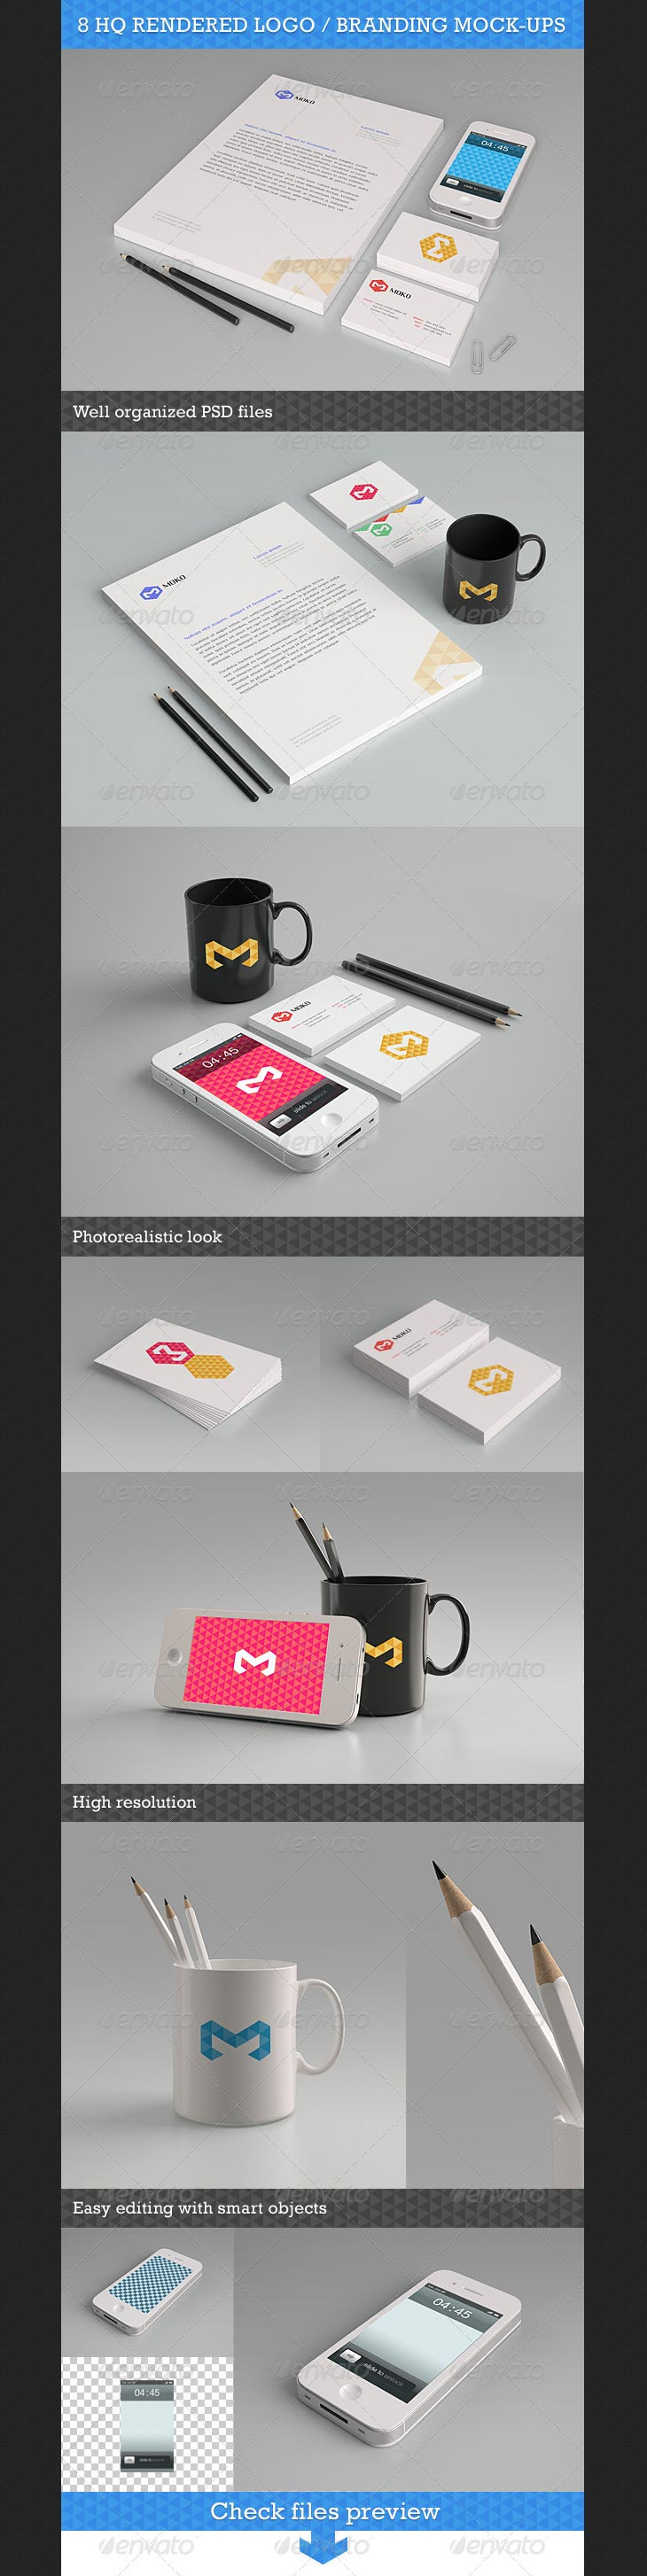 Logo / Branding Mock-Up Pack